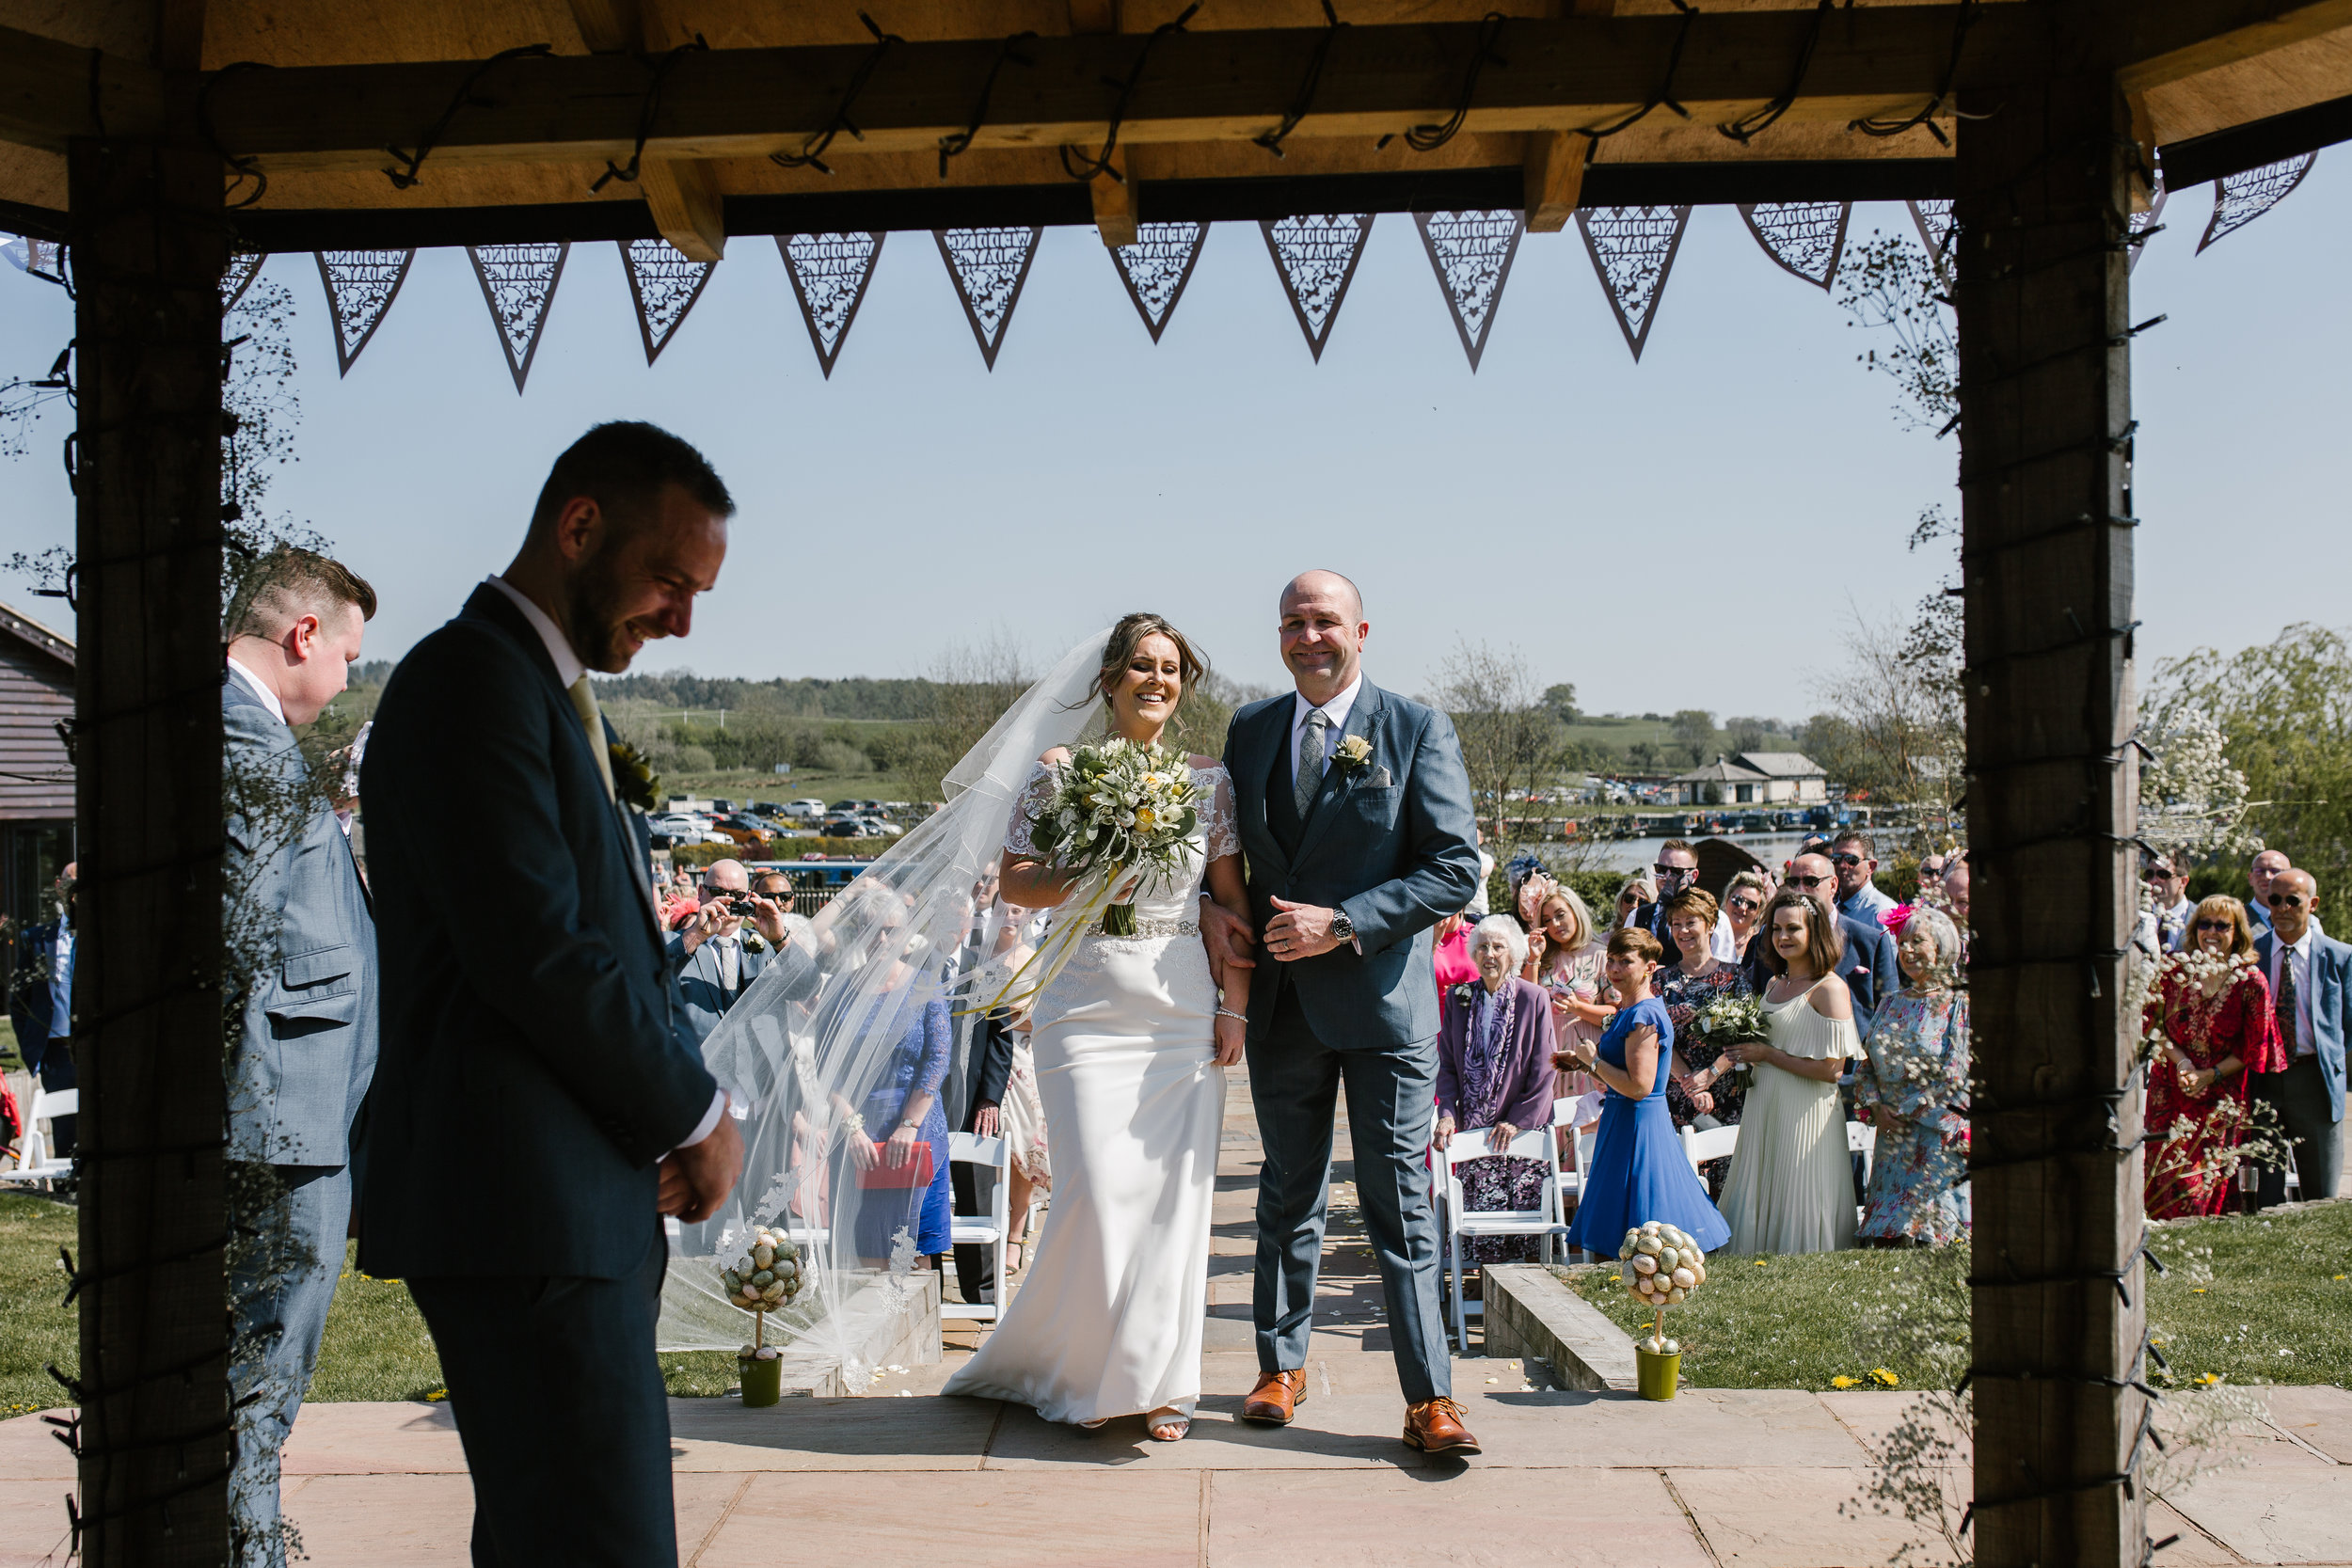 bride meeting her groom at the top of the aisle at their outdoor wedding ceremony